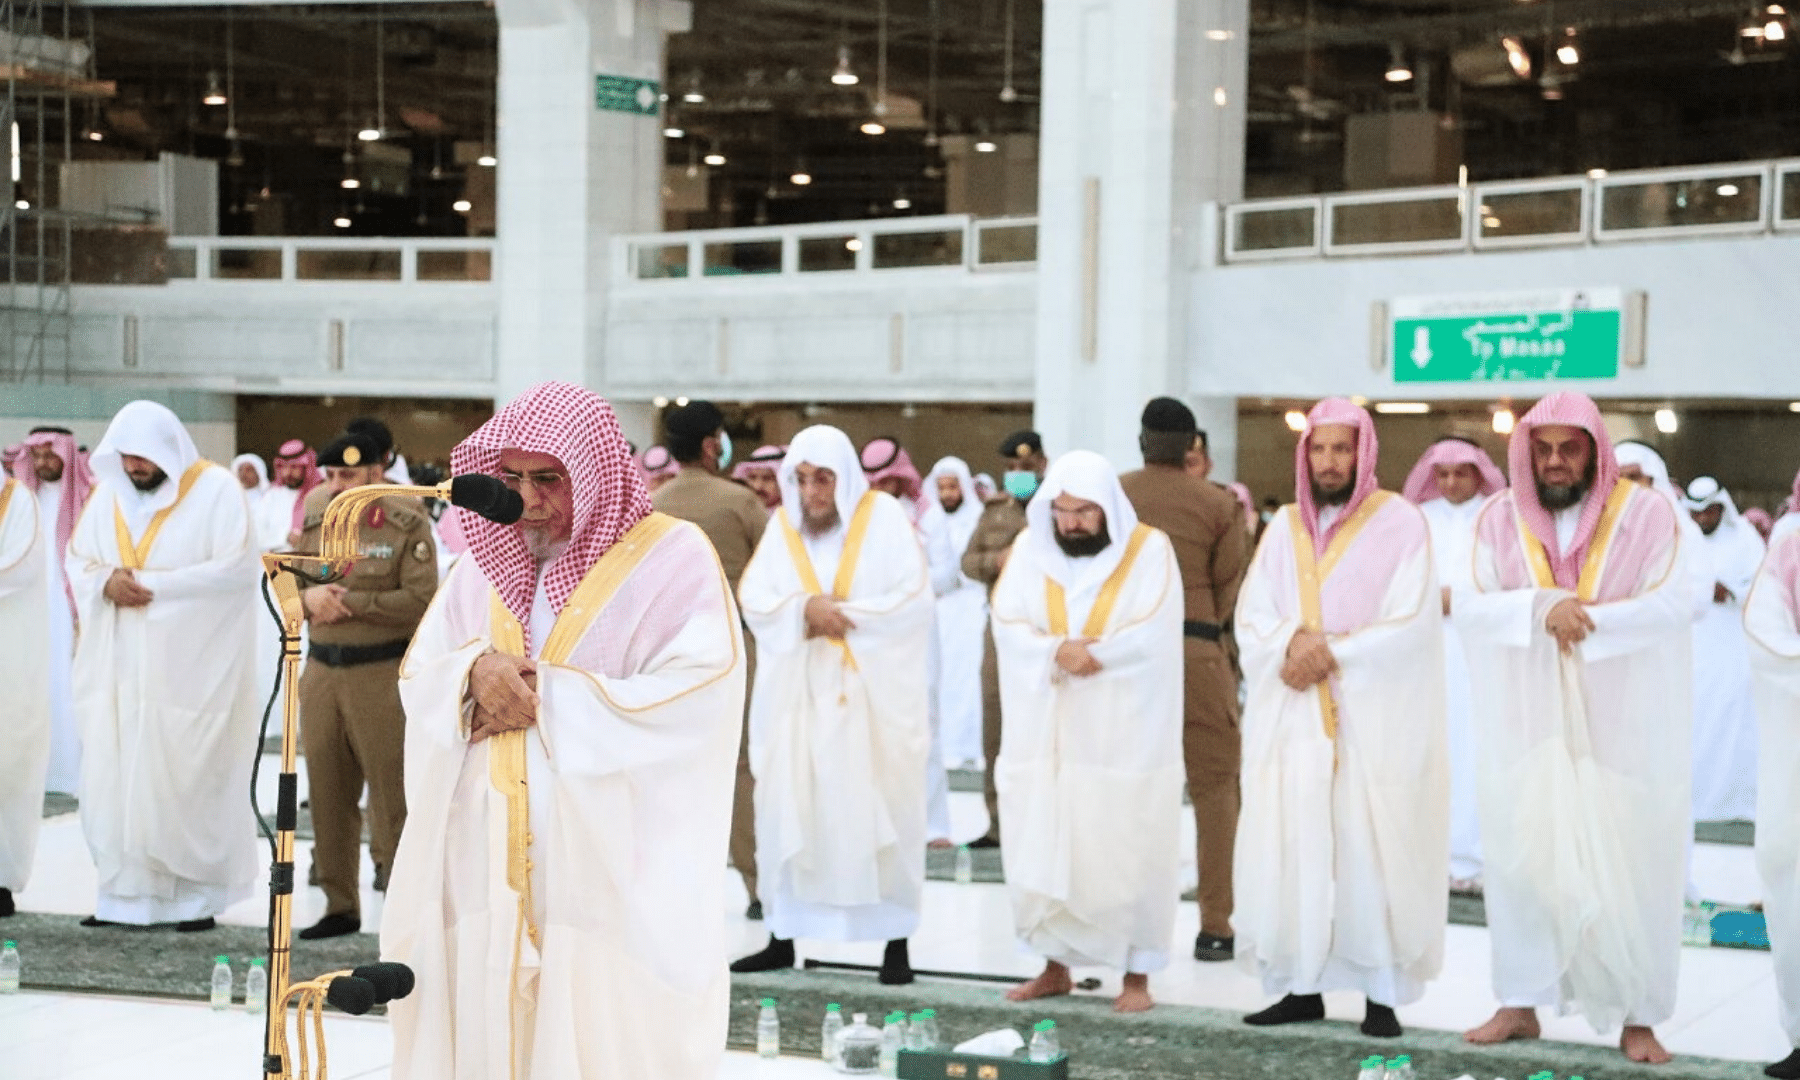 The imam leads Eidul Fitr prayers at the Kaaba in Makkah. The city is under a complete lockdown and the country, last month, advised Muslims to defer Hajj plans amid the pandemic. — Saudi Press Agency